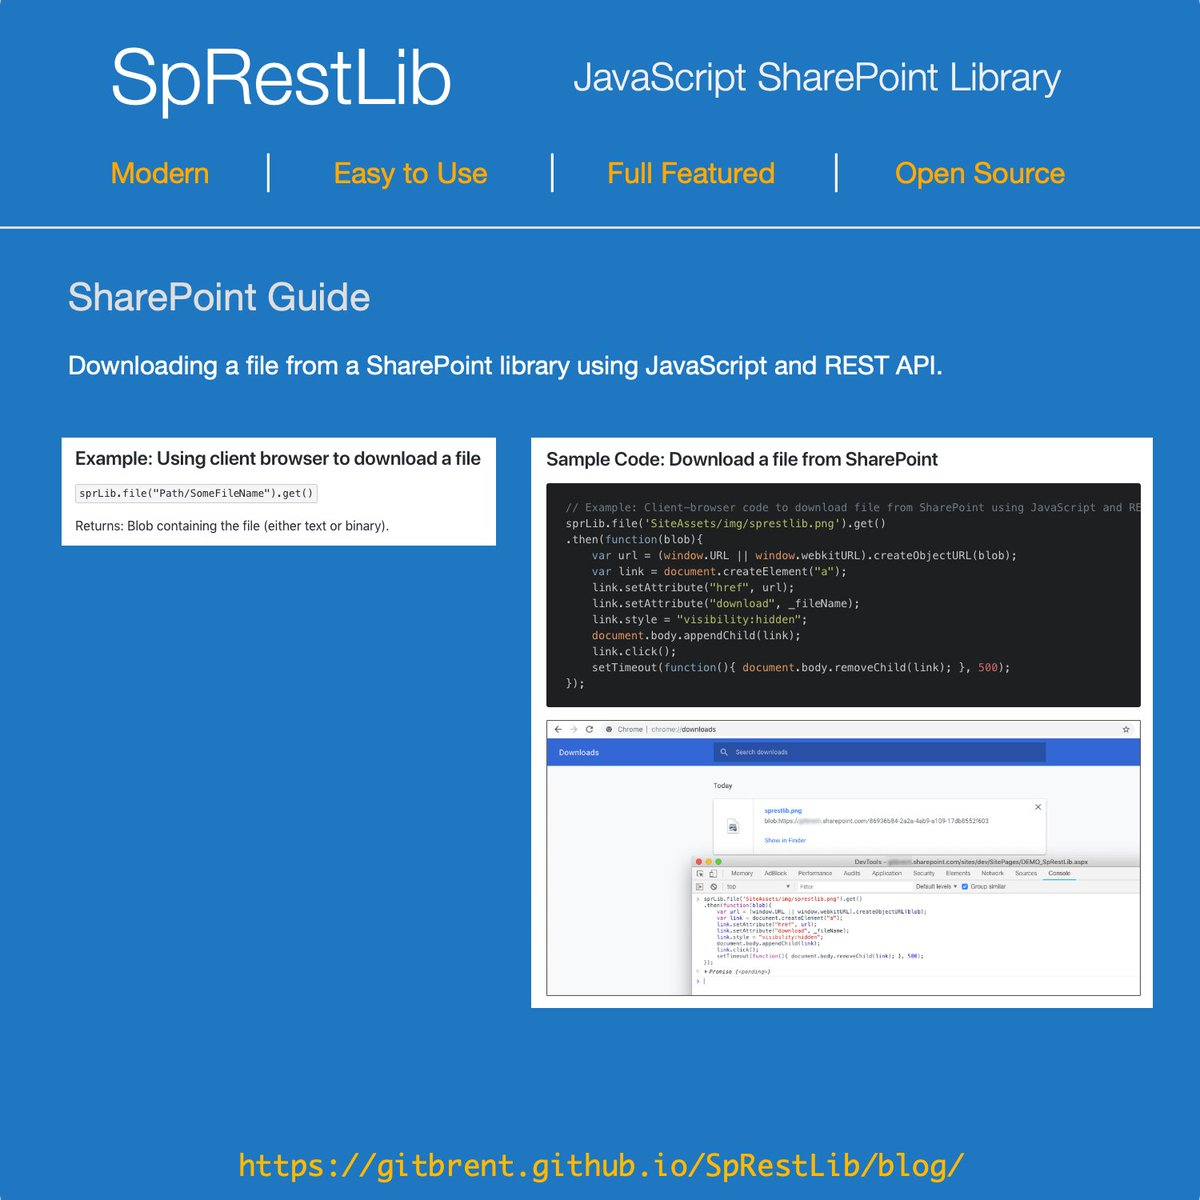 JavaScript SharePoint Library on Twitter: